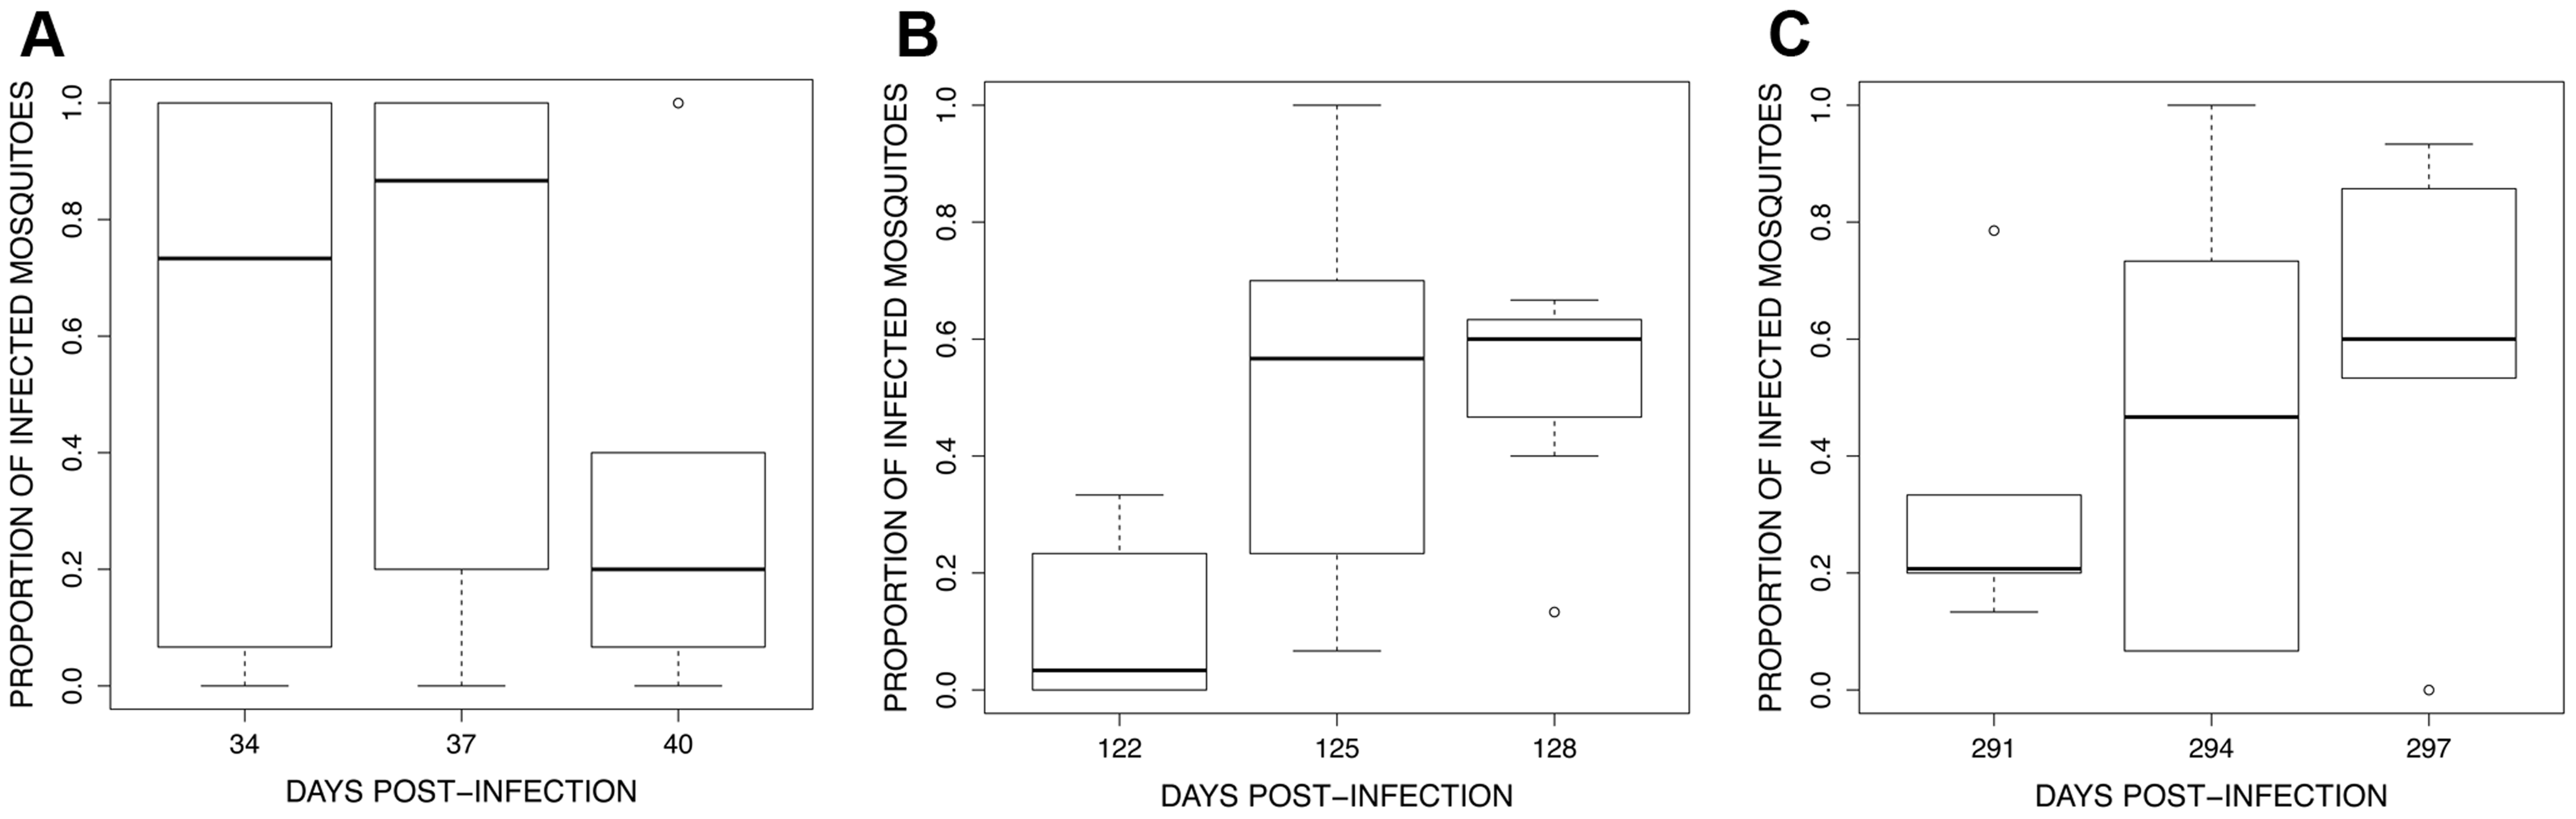 Boxplot of the proportion of infected mosquitoes among 15 haphazardly chosen blood fed individuals on each bird (harbouring at least 1 oocyst in the midgut) for the 3 exposure sessions (see <em class=&quot;ref&quot;>Fig. 4</em>): (A) session 1 (34–40 dpi), (B) session 2 (122–128 dpi) and (C) session 3 (291–297 dpi).